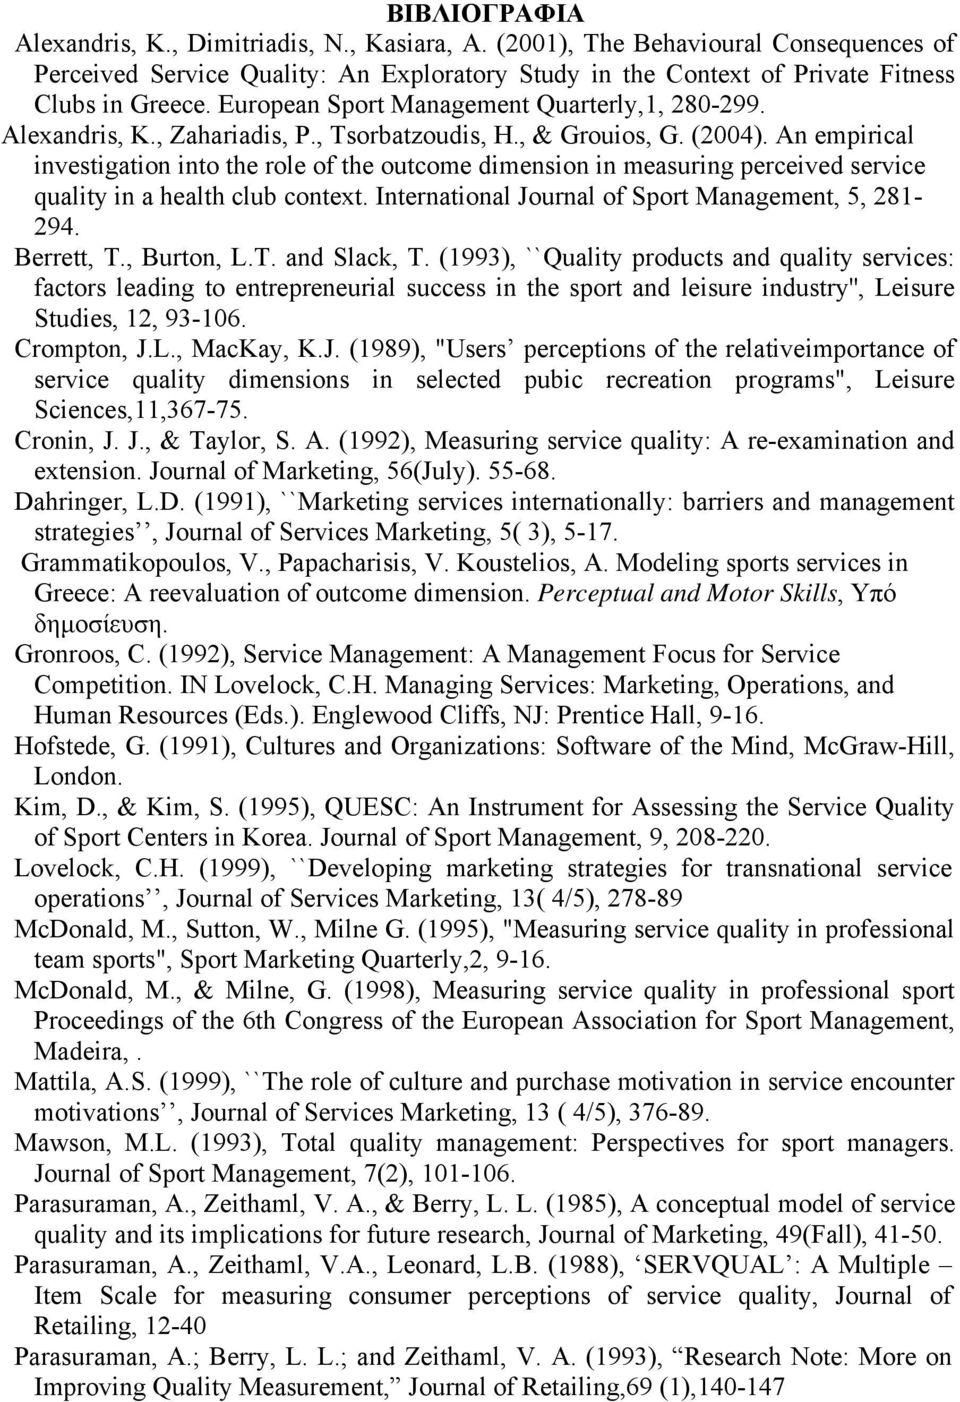 An empirical investigation into the role of the outcome dimension in measuring perceived service quality in a health club context. International Journal of Sport Management, 5, 281-294. Berrett, T.